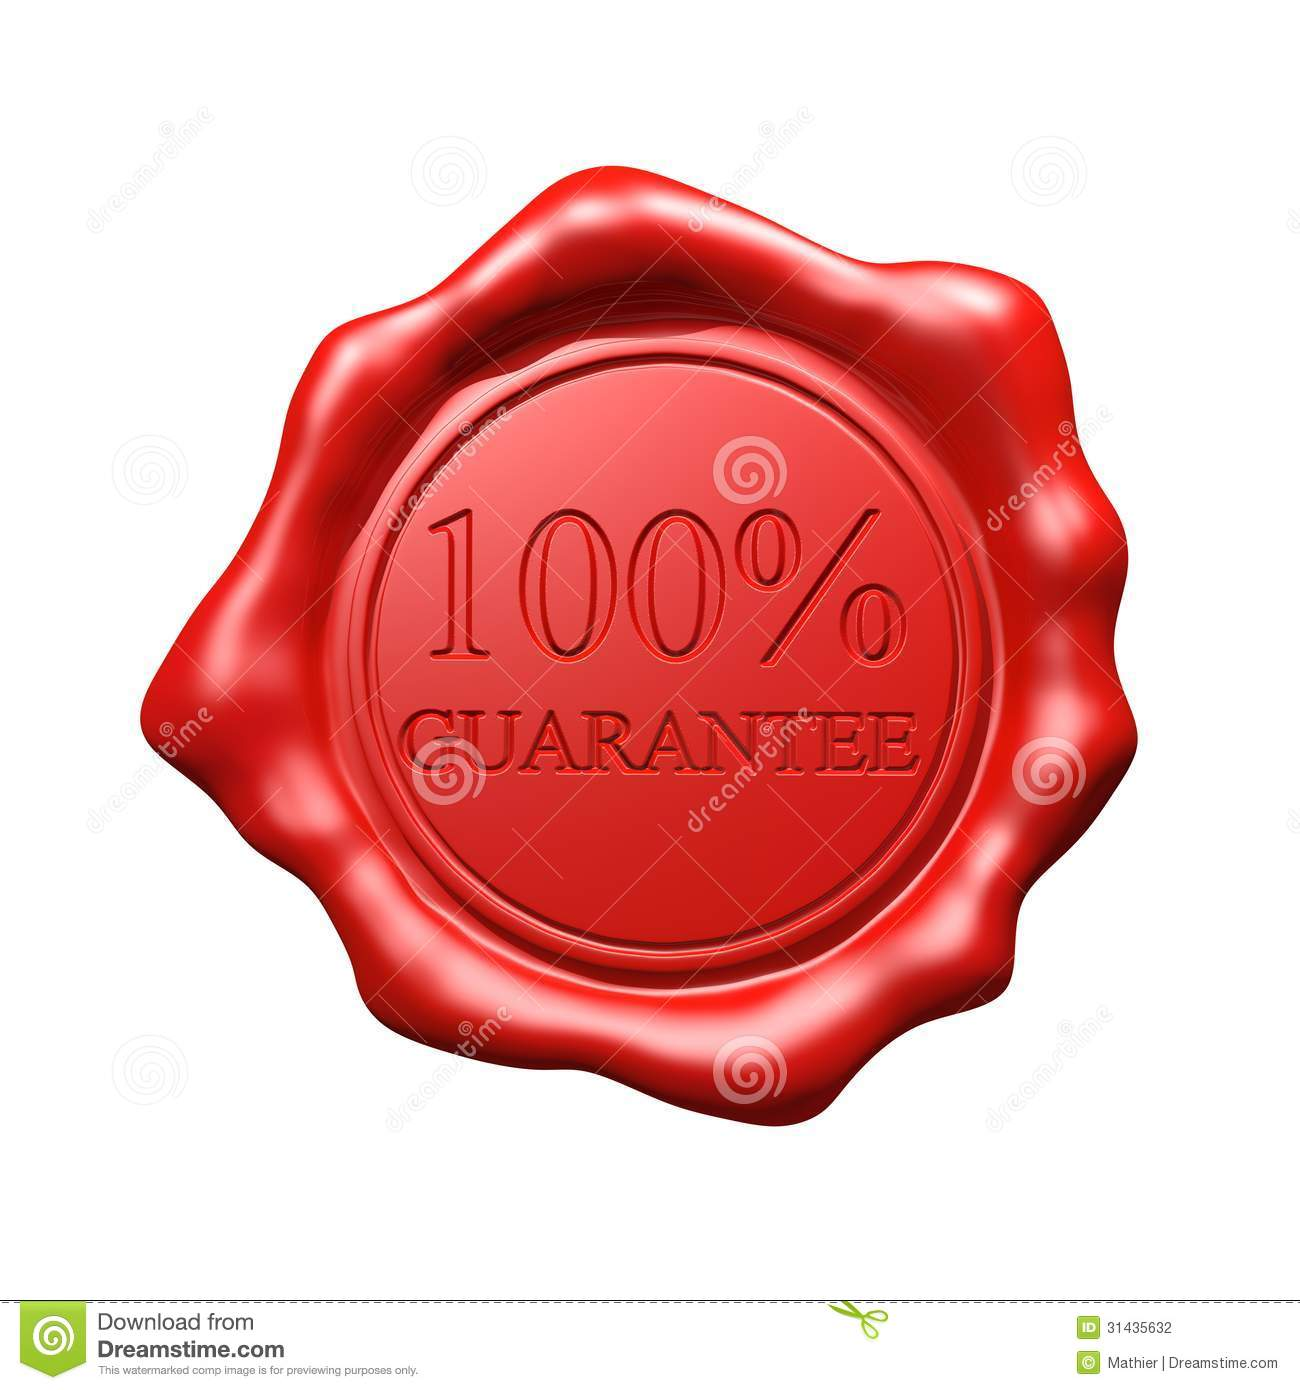 Red Wax Seal - 100% Guarantee - Isolated (white or transparent ...